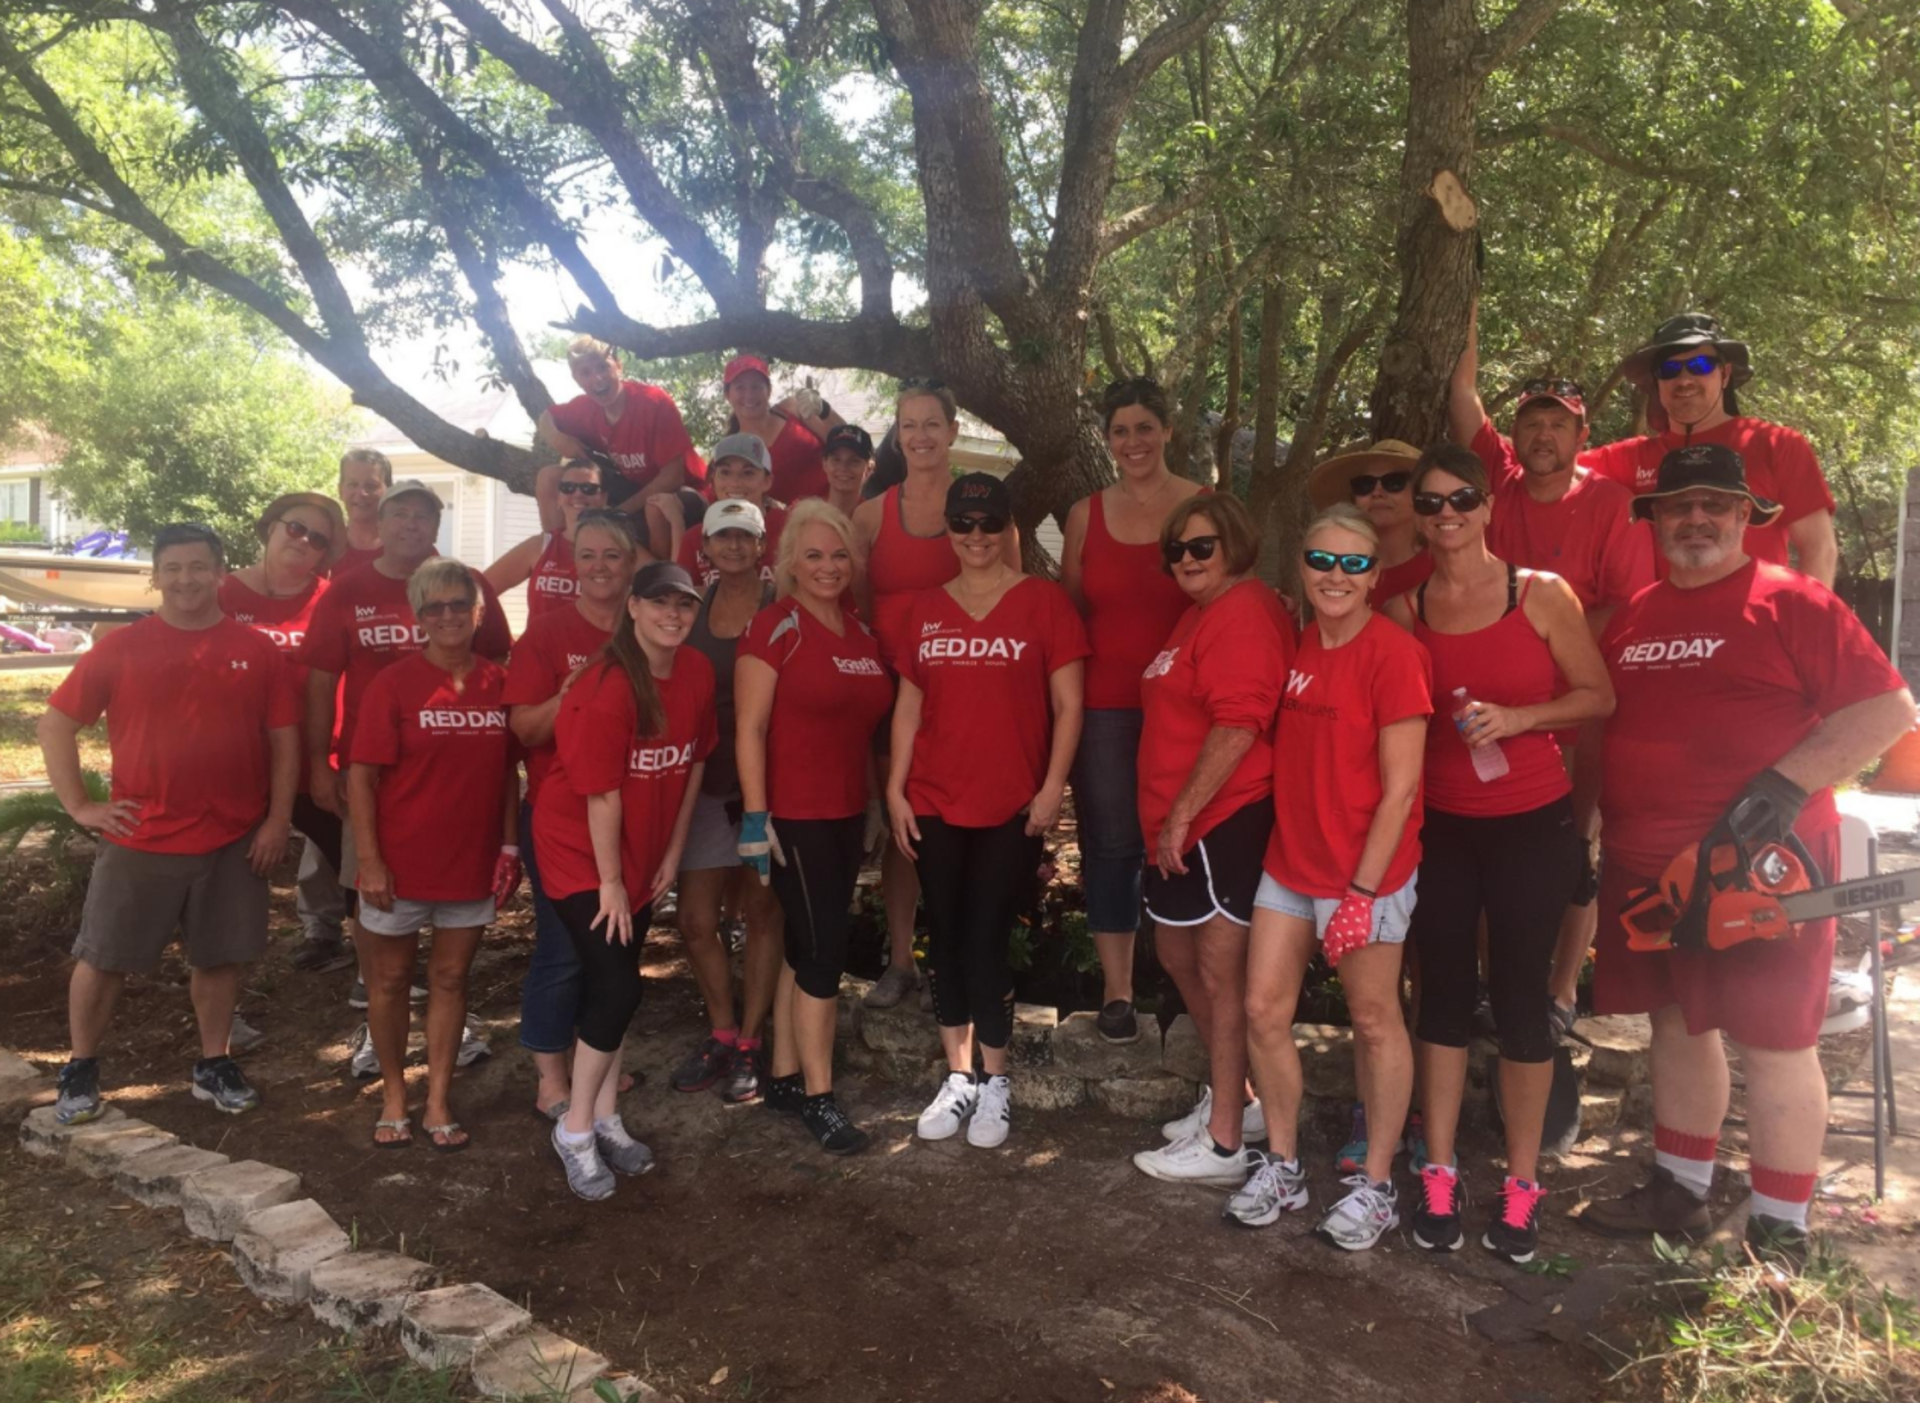 Keller Williams Realty Emerald Coast gives back to the community